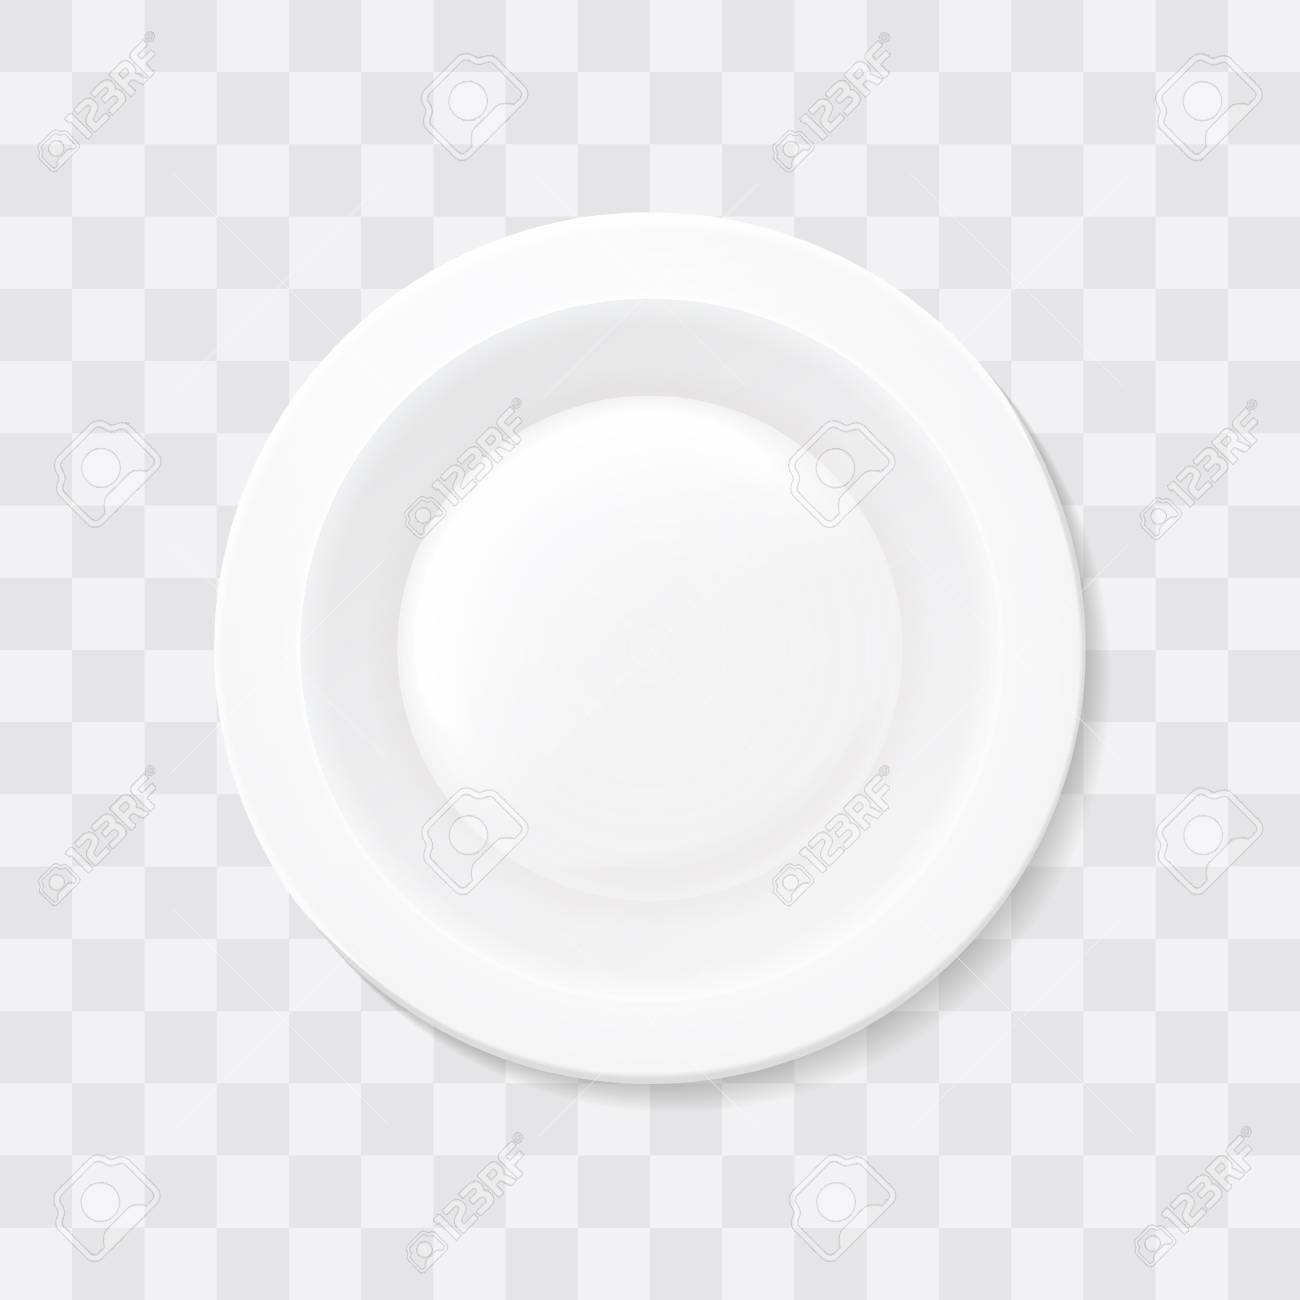 empty white soup plate top view realistic bowl royalty free cliparts vectors and stock illustration image 78844577 empty white soup plate top view realistic bowl